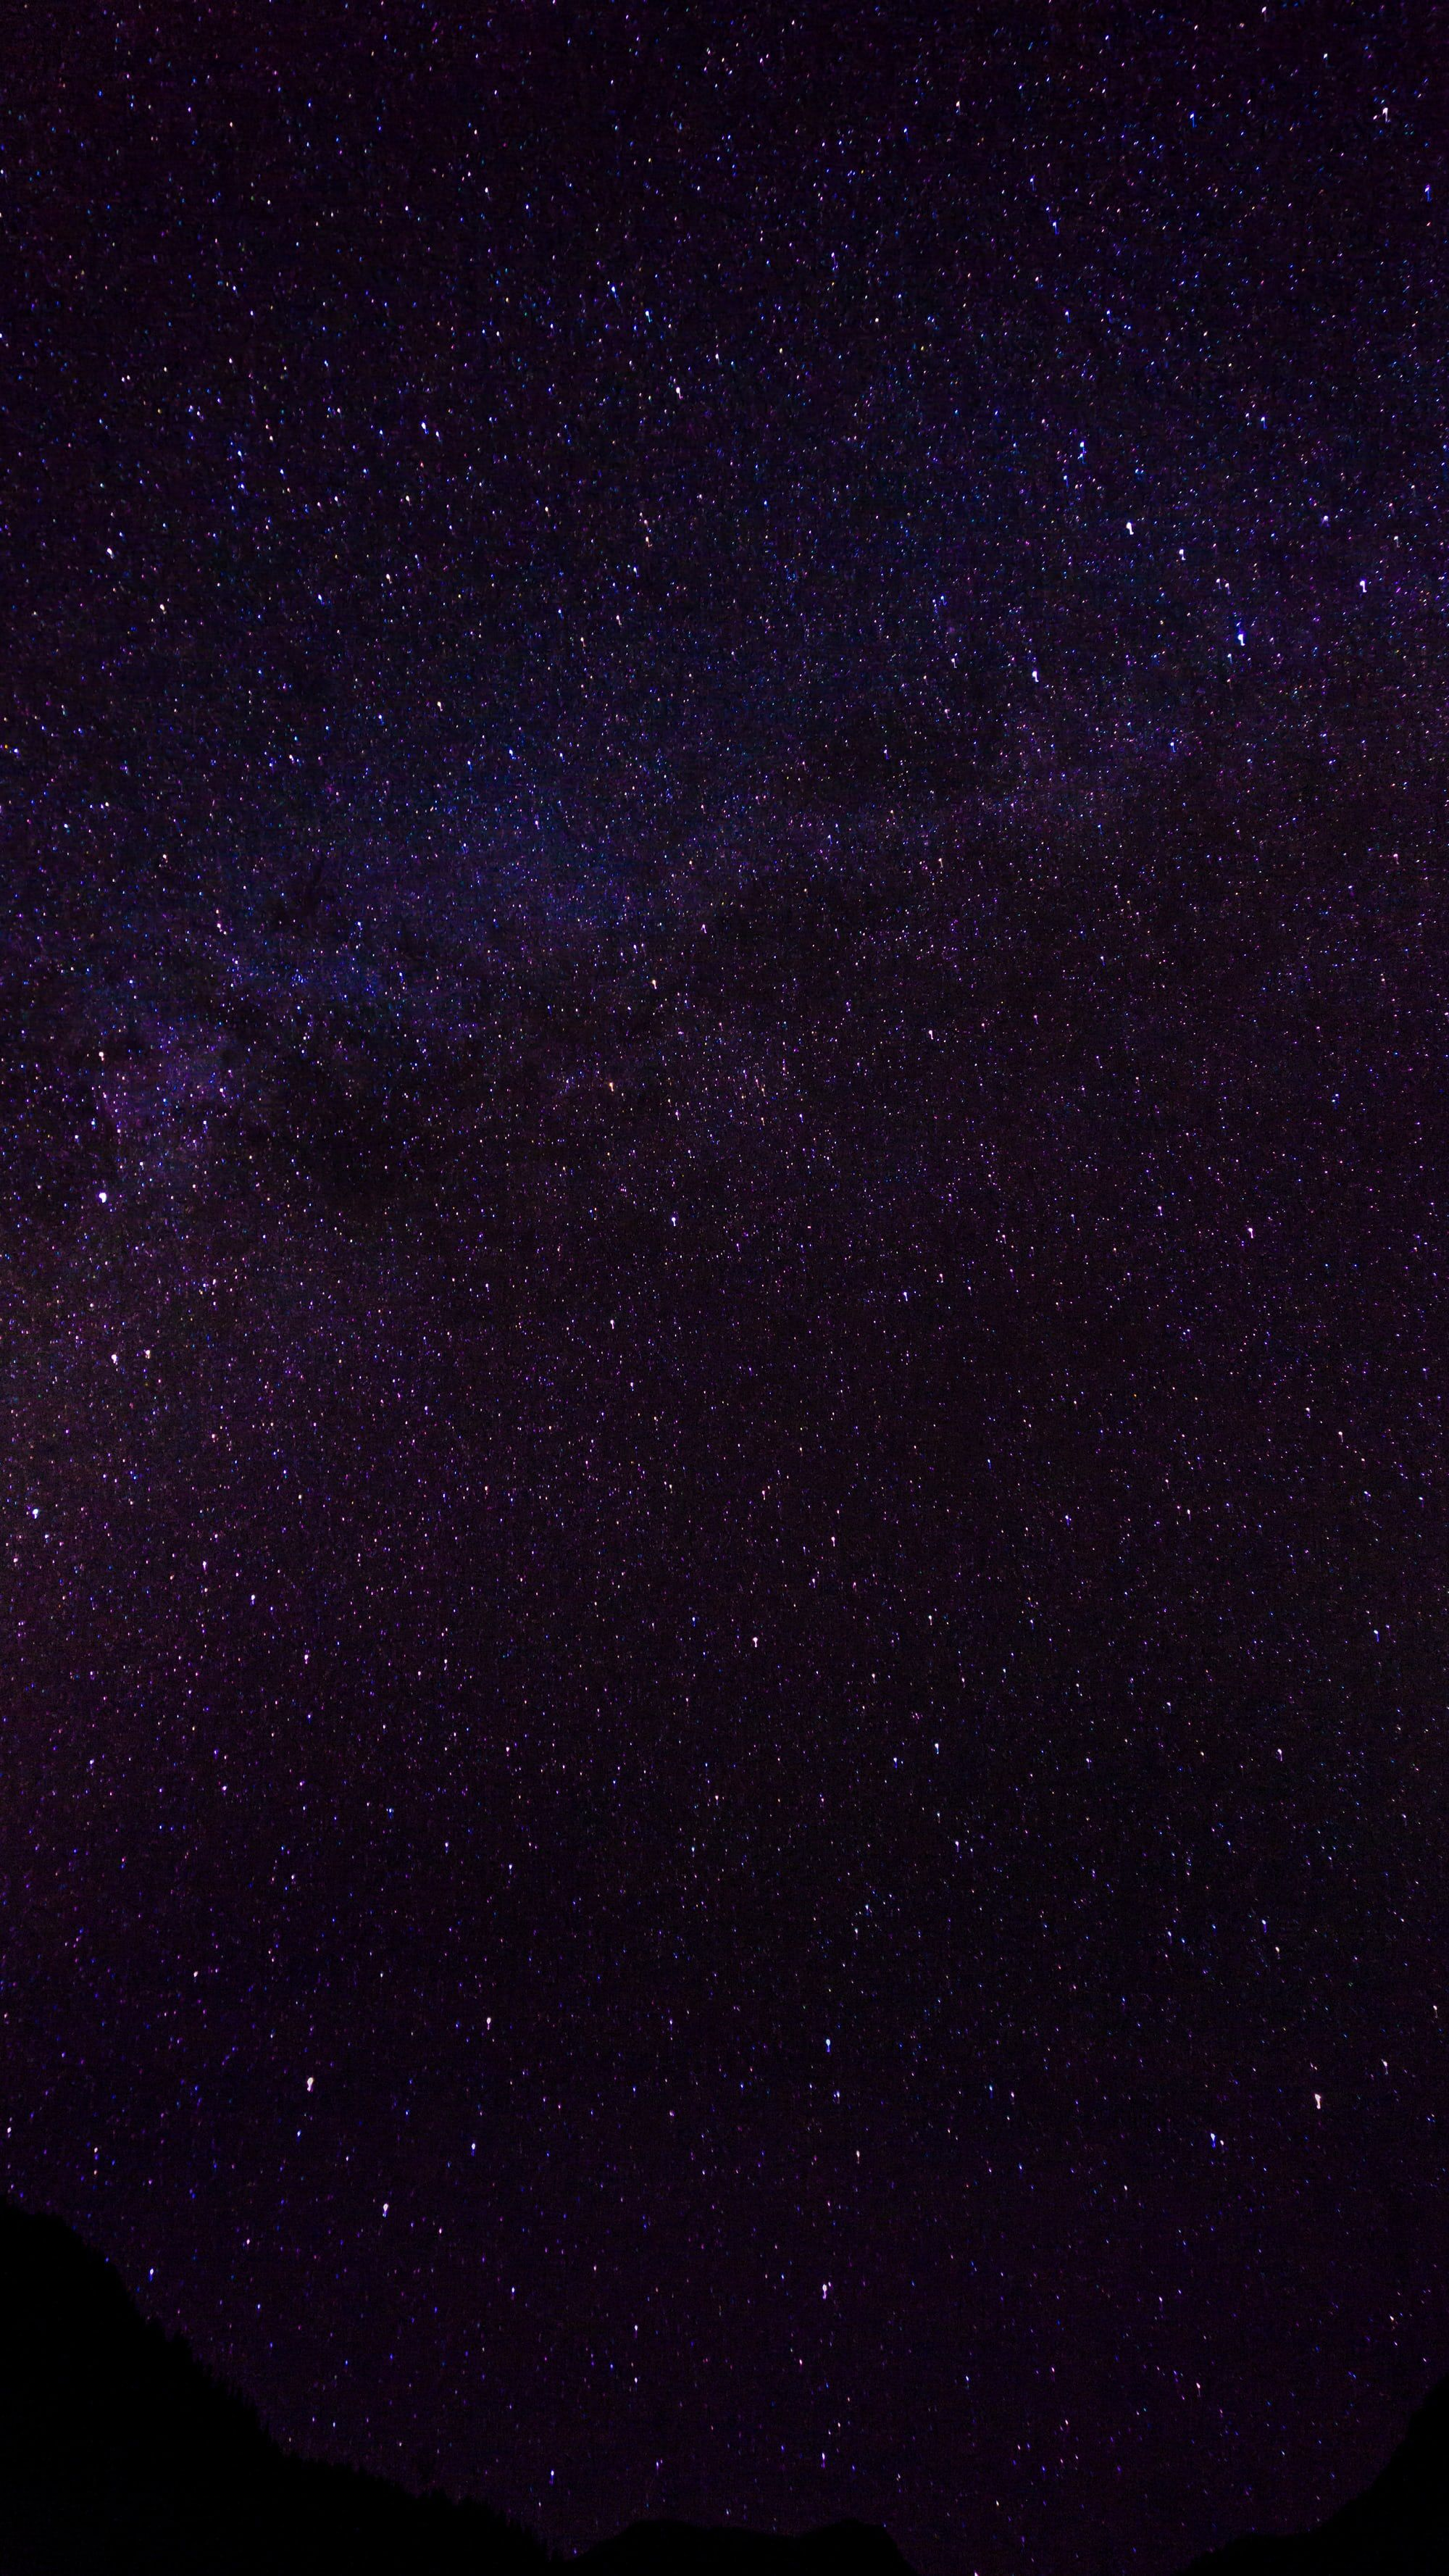 Thanks To Mattkgross For Making This Photo Available Freely On Unsplash In 2021 Purple Galaxy Wallpaper Galaxy Wallpaper Dark Wallpaper